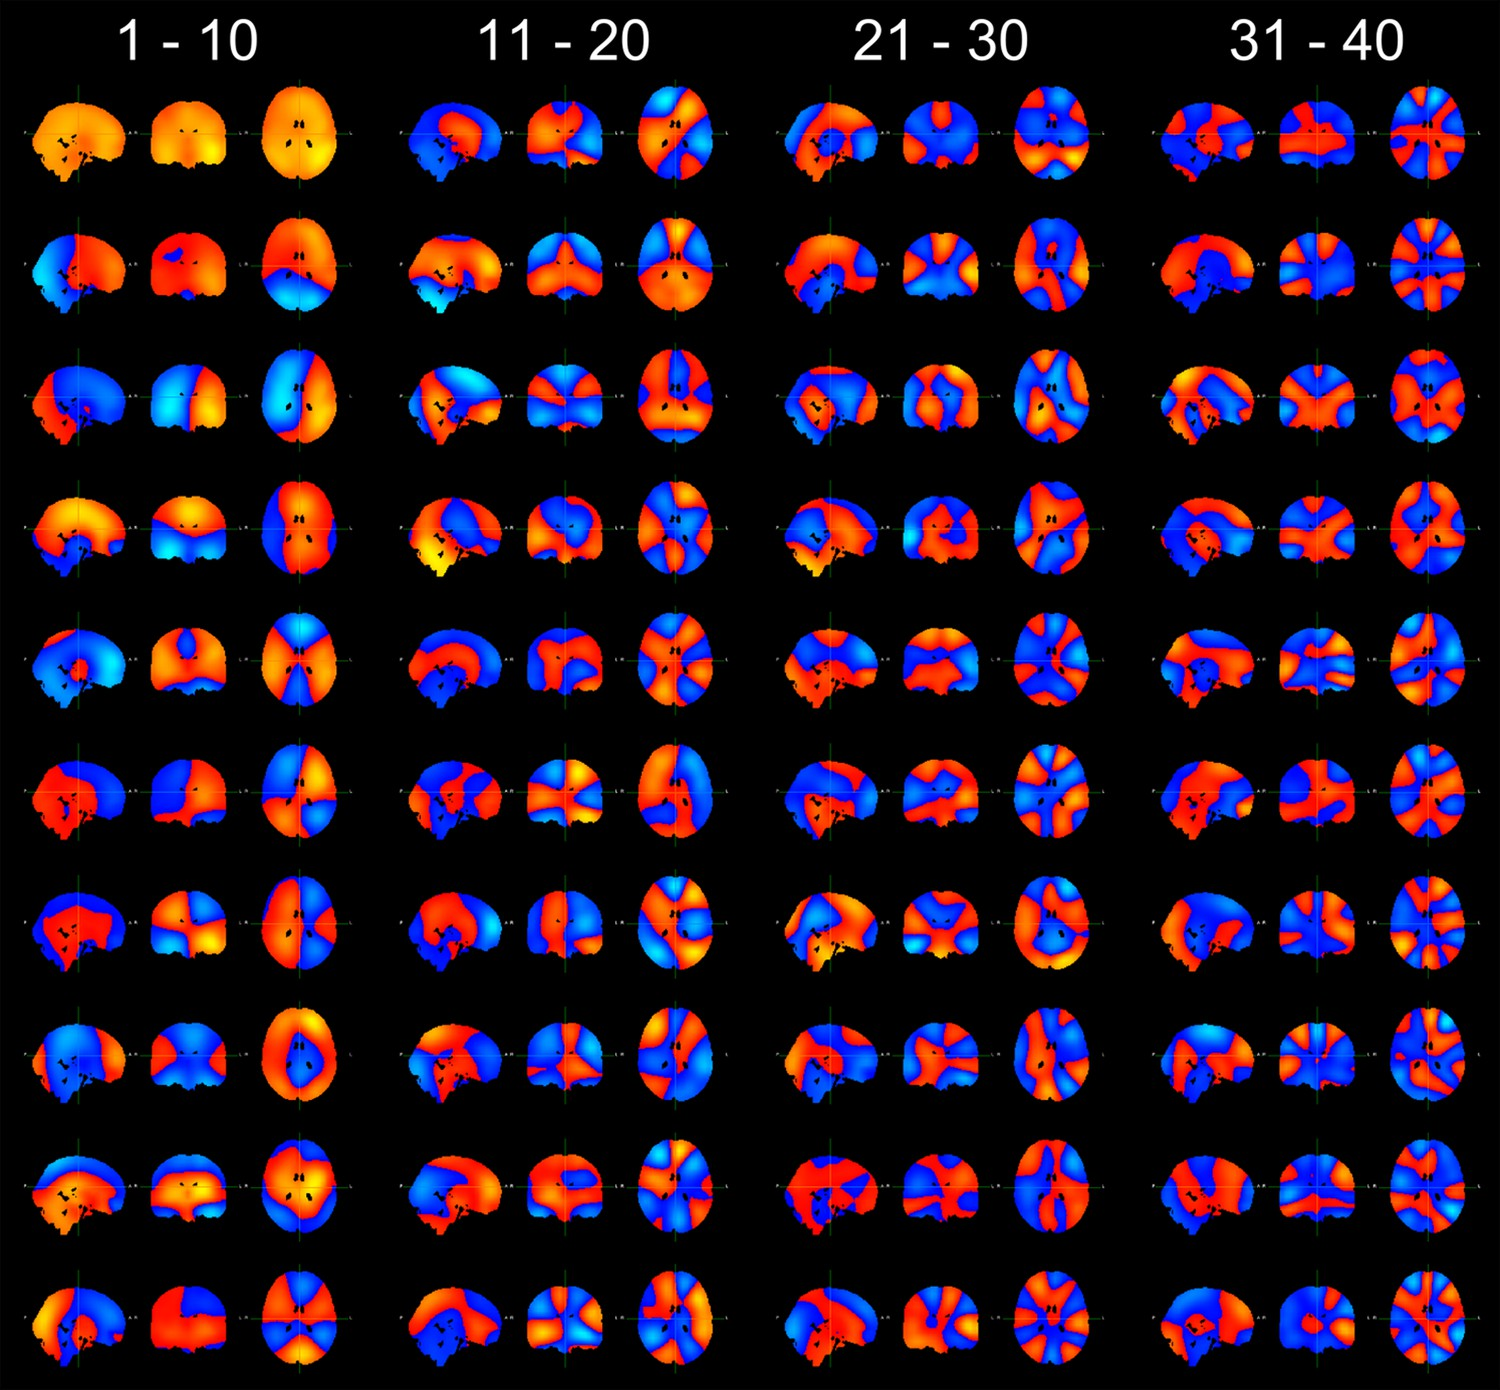 Fast Transient Networks In Spontaneous Human Brain Activity Elife Electric Circuits And Fields Nuffield Foundation Spatial Topographies Of The 40 Principal Components Arranged Order Their Variance Top To Bottom Left Right